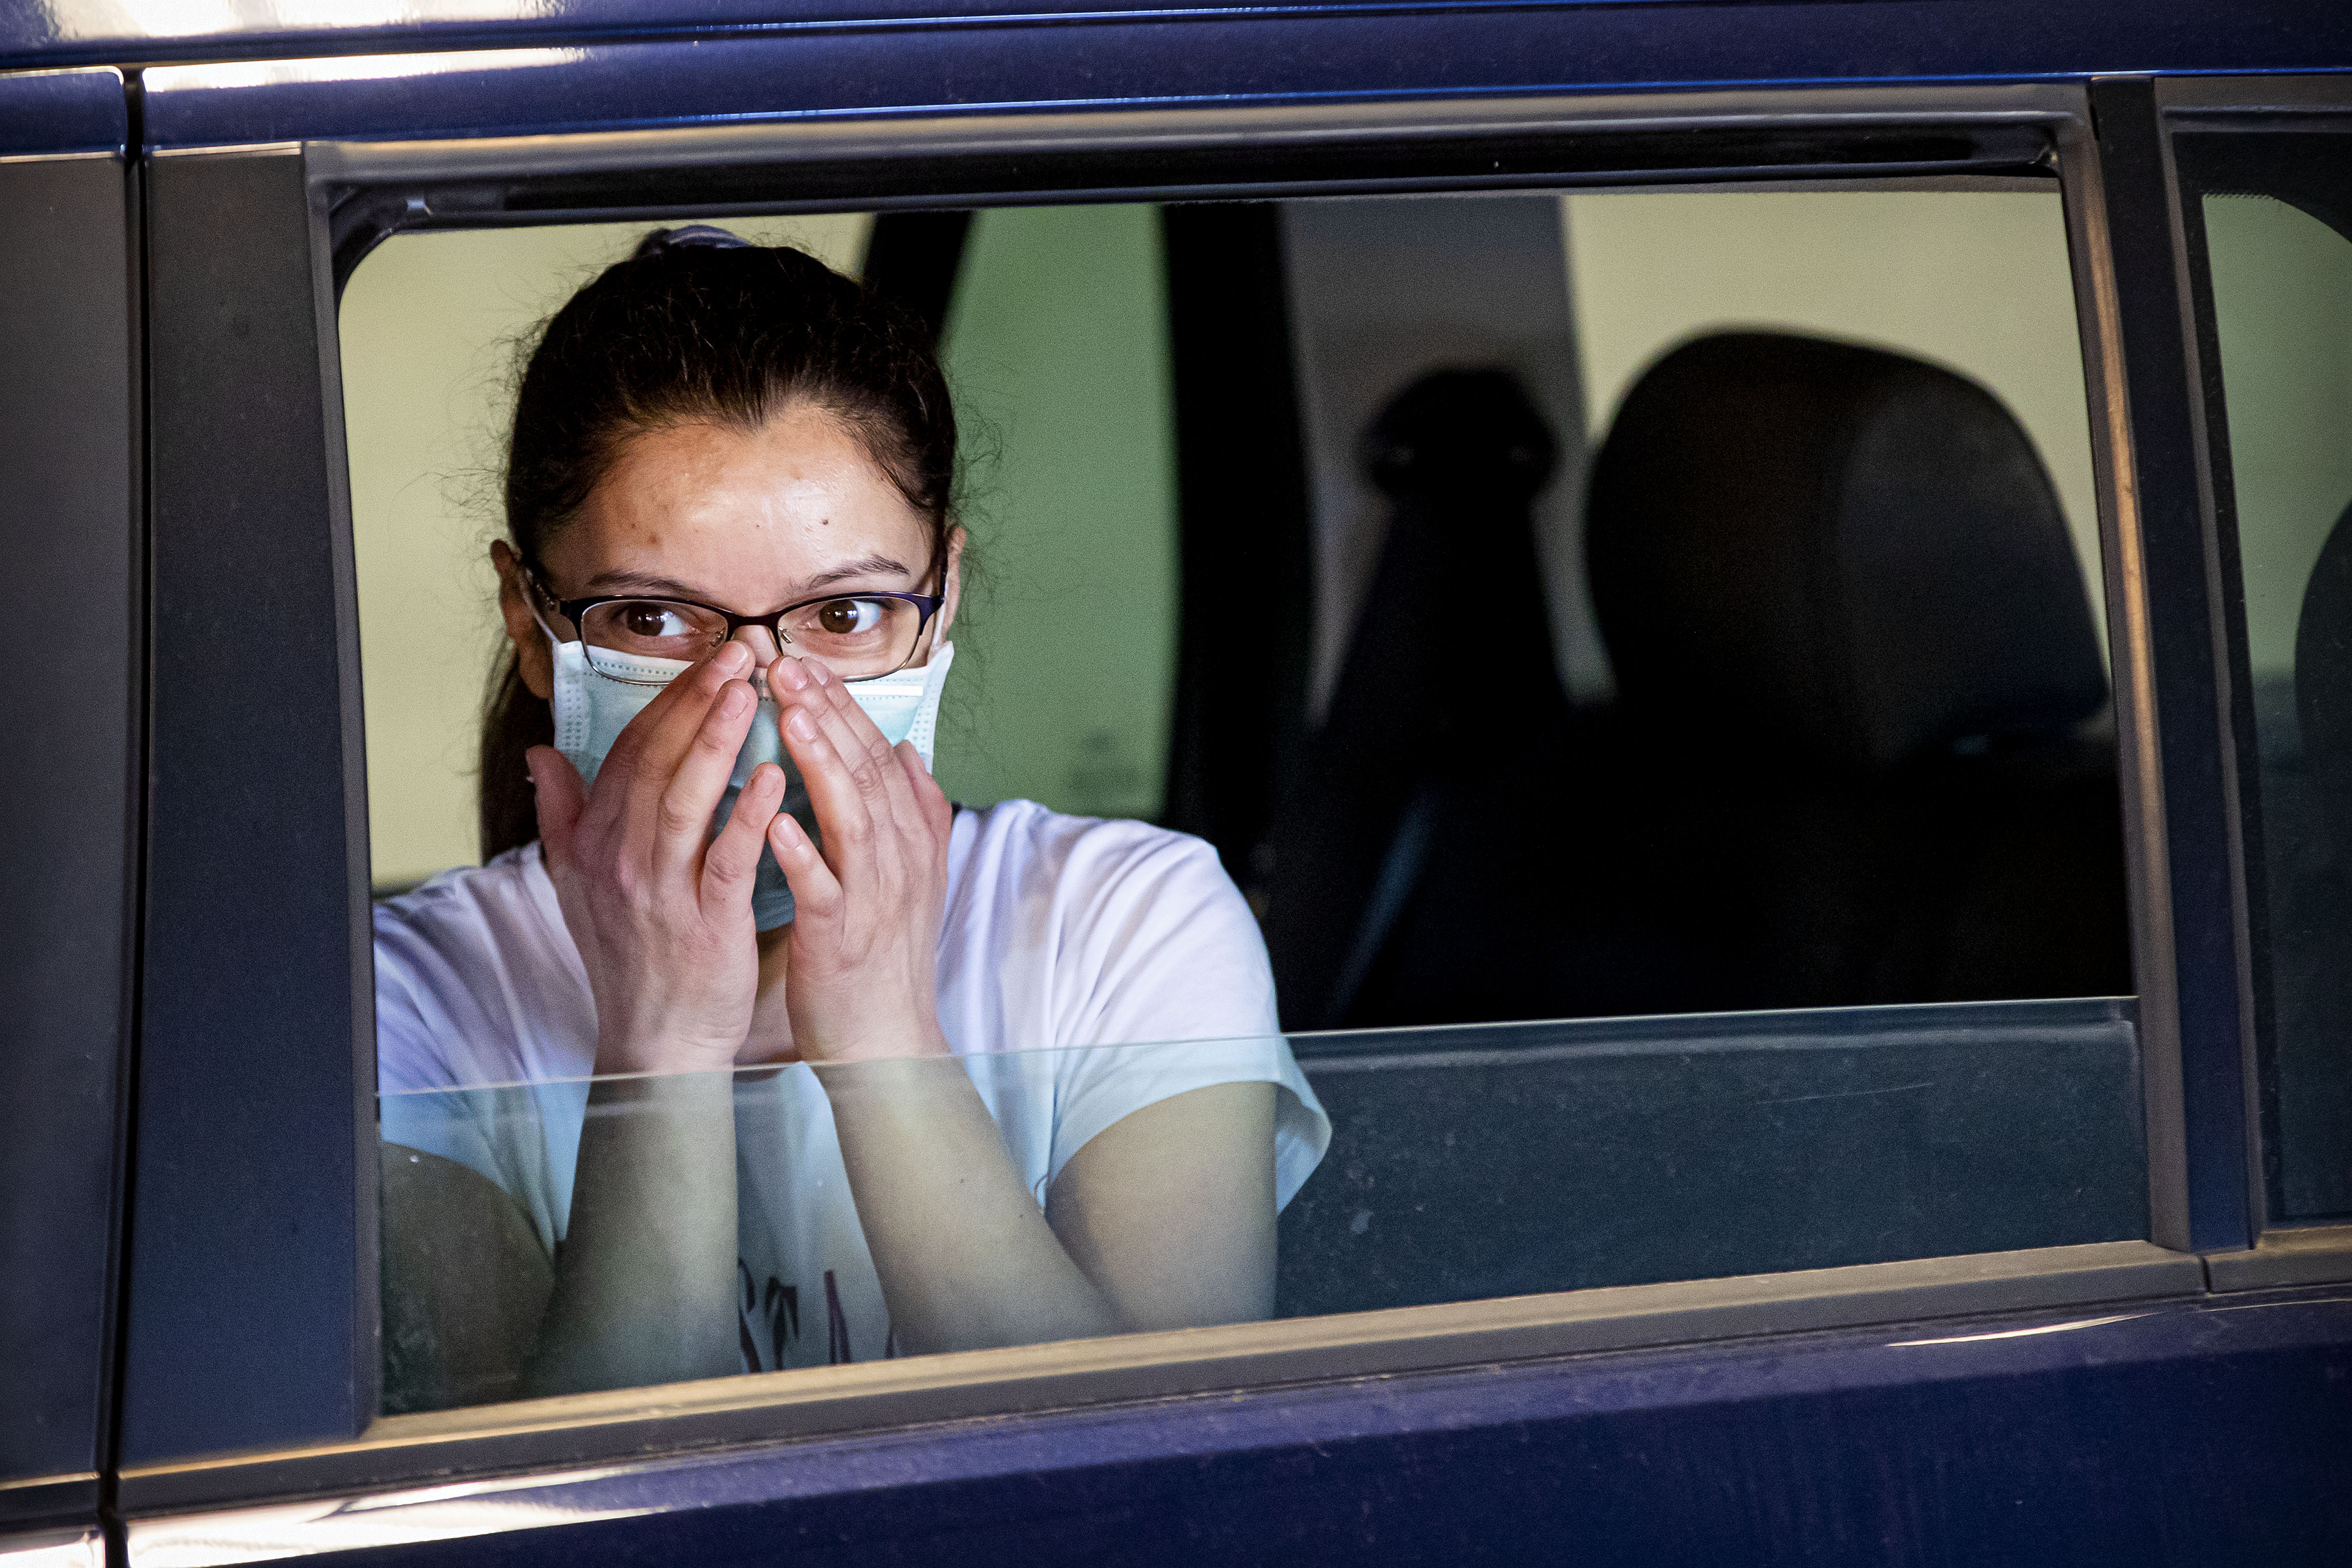 DORDRECHT, NETHERLANDS - APRIL 21: A girl with a face masks watches as Medical staff from the Medical Service Dordrecht test people with symptoms of COVID-19 at a drive in location on April 21, 2020 in Tiel, Netherlands. The price of the test is 70 euros. Instead of adopting a hard lockdown similar to its European neighbours, the Netherlands opted for a targeted lockdown, which allows some shops to continue if there was a low risk of spreading the virus. The coronavirus (COVID-19) pandemic has spread to many countries across the world, claiming over 176,000 lives and infecting more than 2.5 million people. (Photo by Patrick van Katwijk/Getty Images)